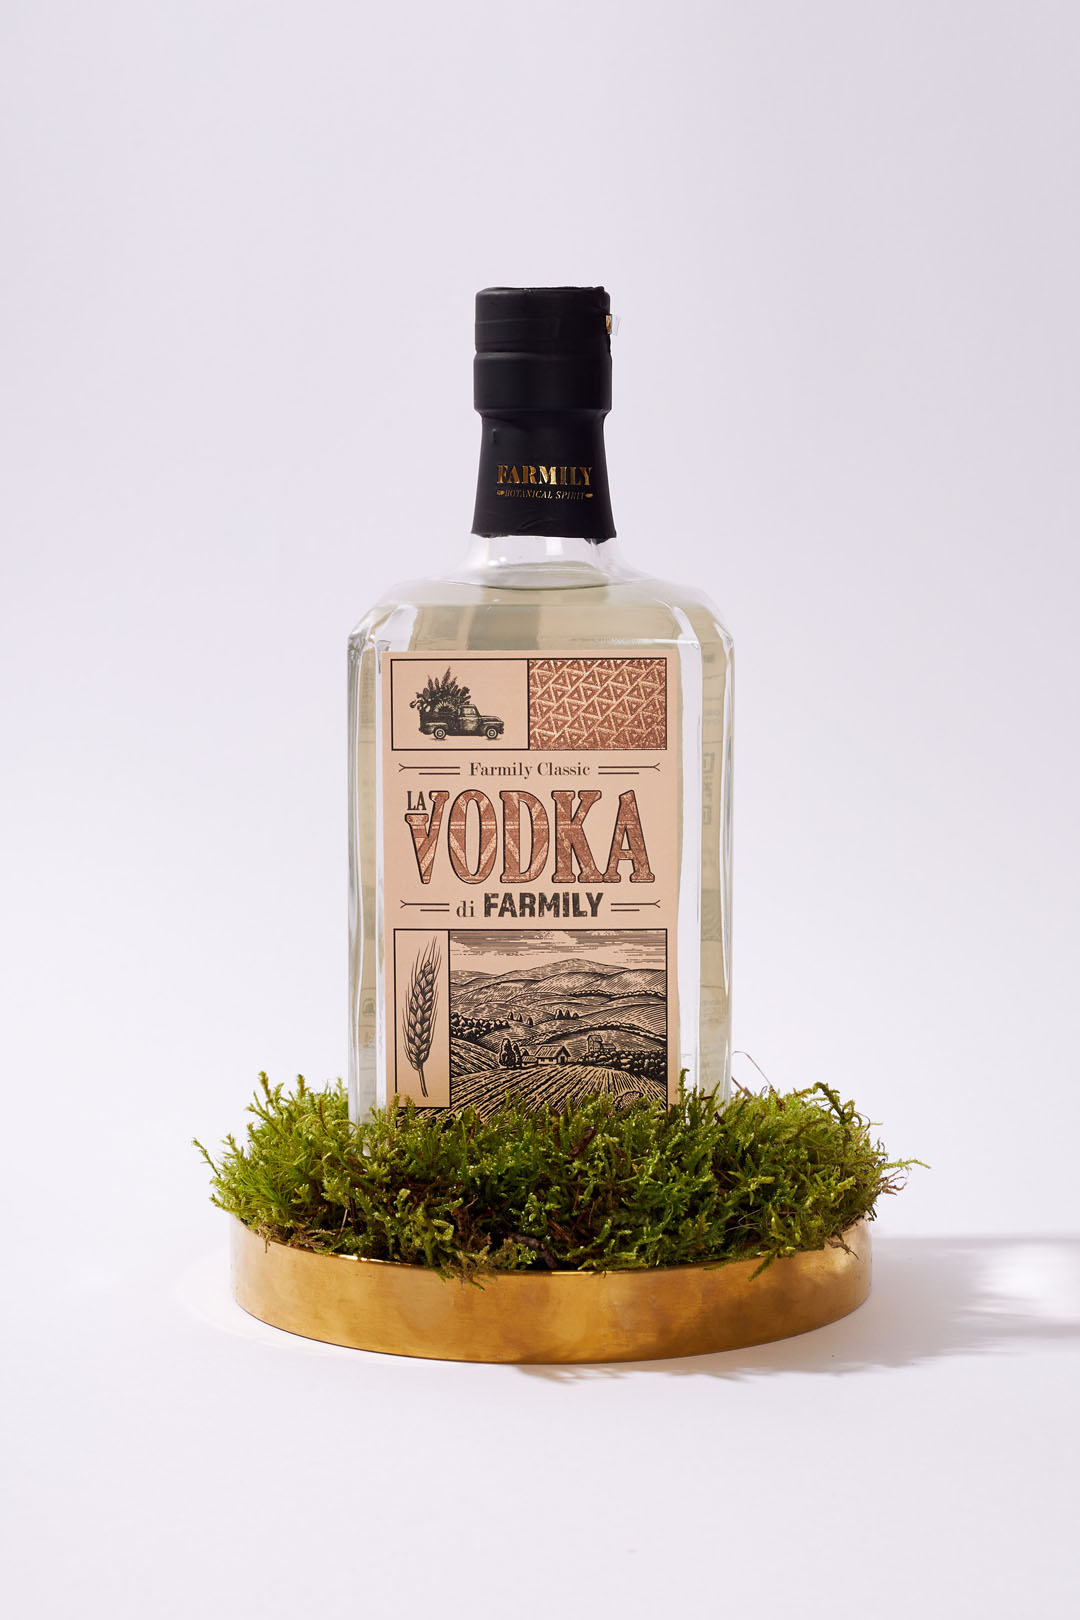 La nuova vodka di Farmily